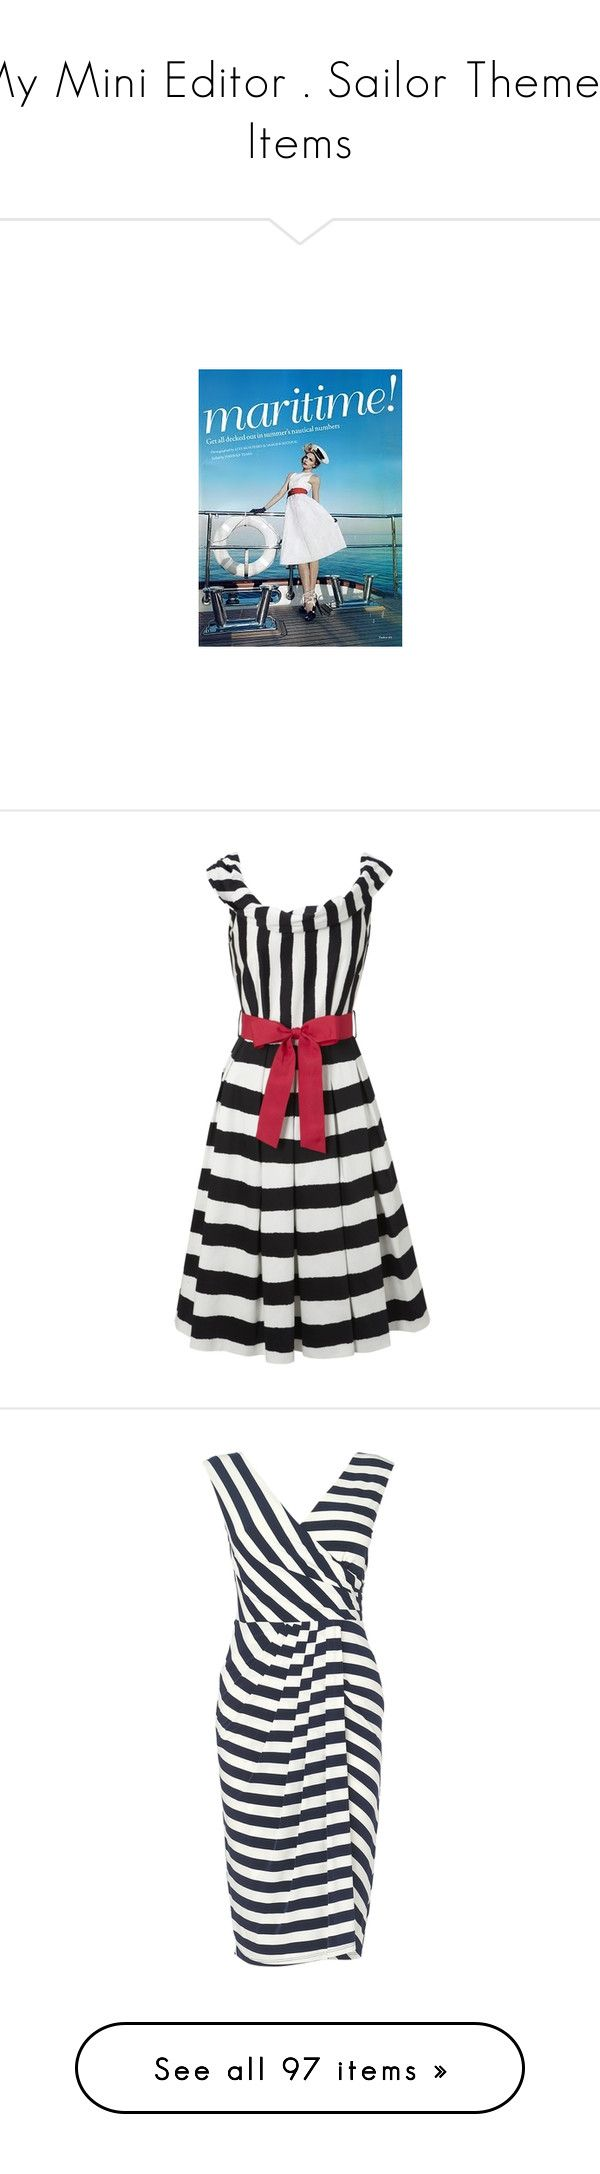 """My Mini Editor . Sailor Theme - Items"" by nocturnae ❤ liked on Polyvore featuring dresses, vestidos, stripes, платья, retro dresses, evening dresses, white and black striped dress, summer cocktail dresses, striped dress and navy blue nautical dress"